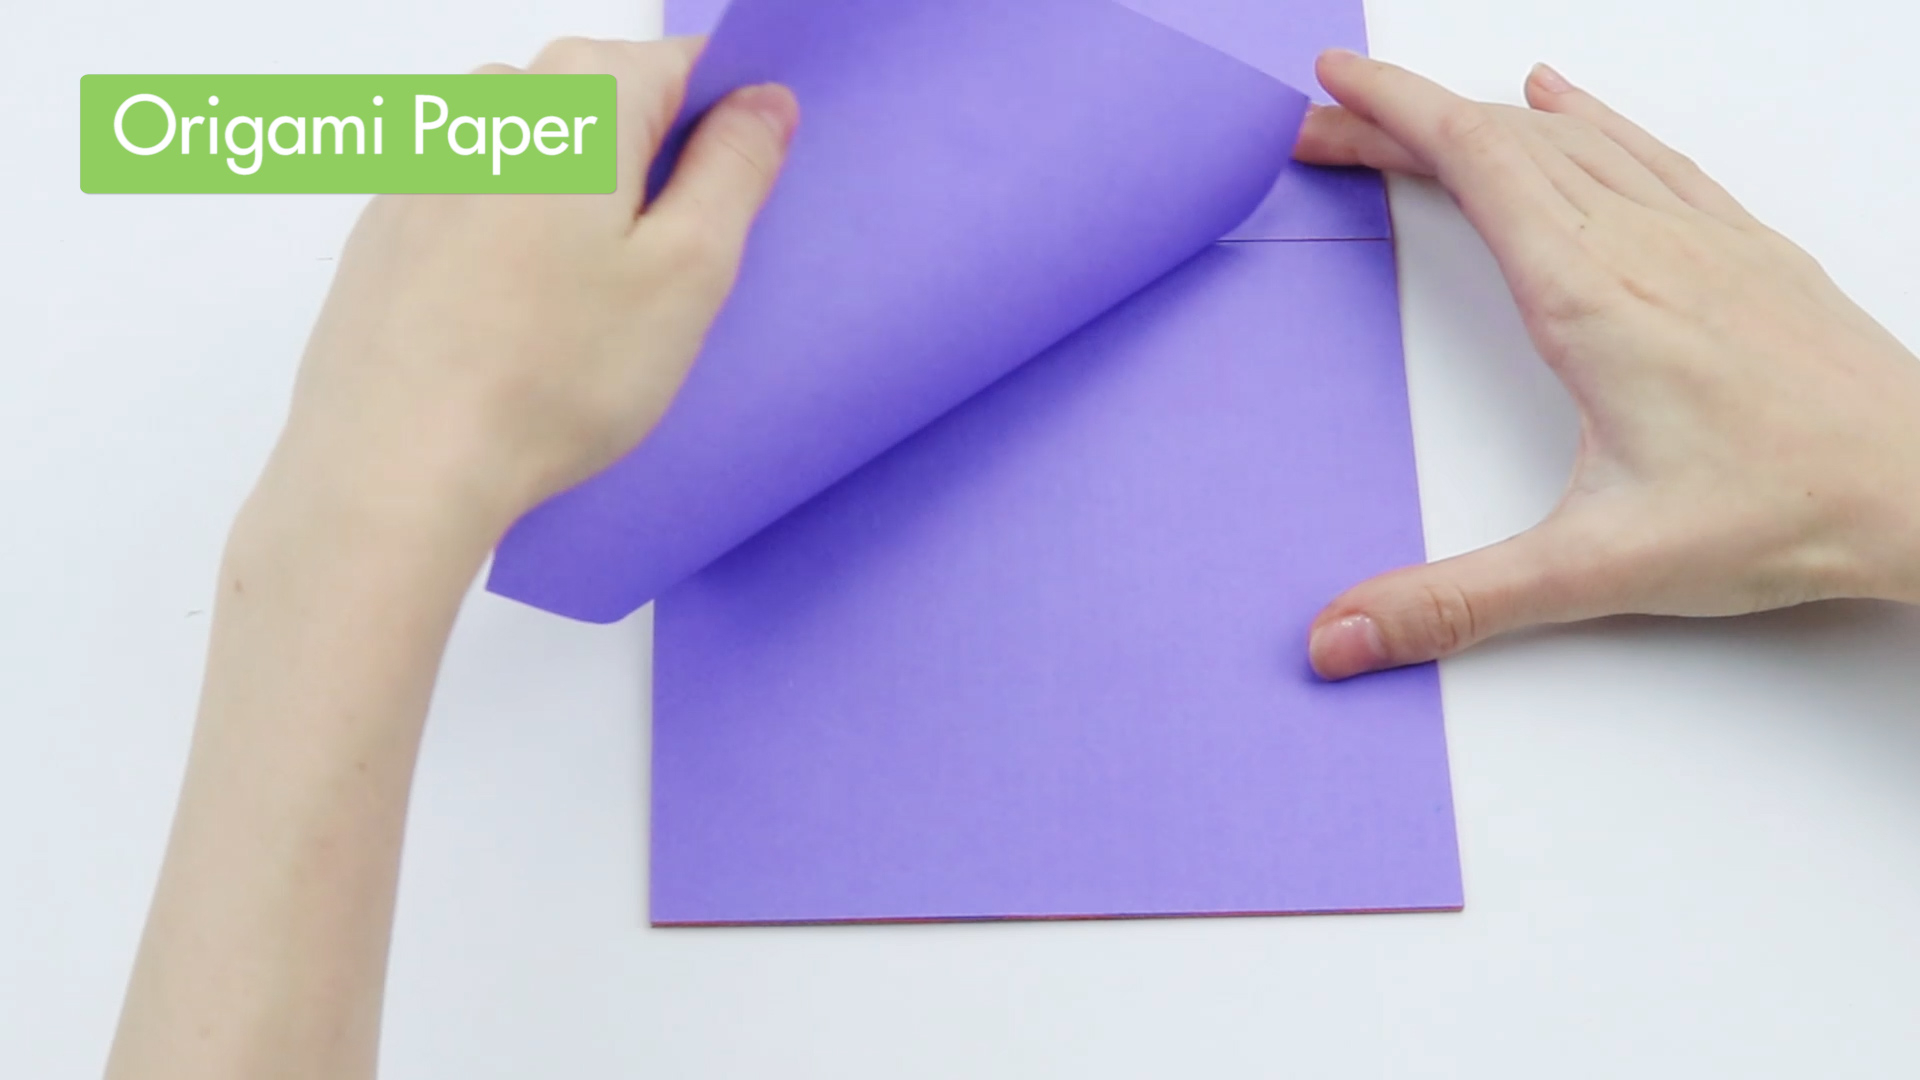 How To Make A Bird With Origami 3 Ways To Make An Origami Flying Bird Wikihow